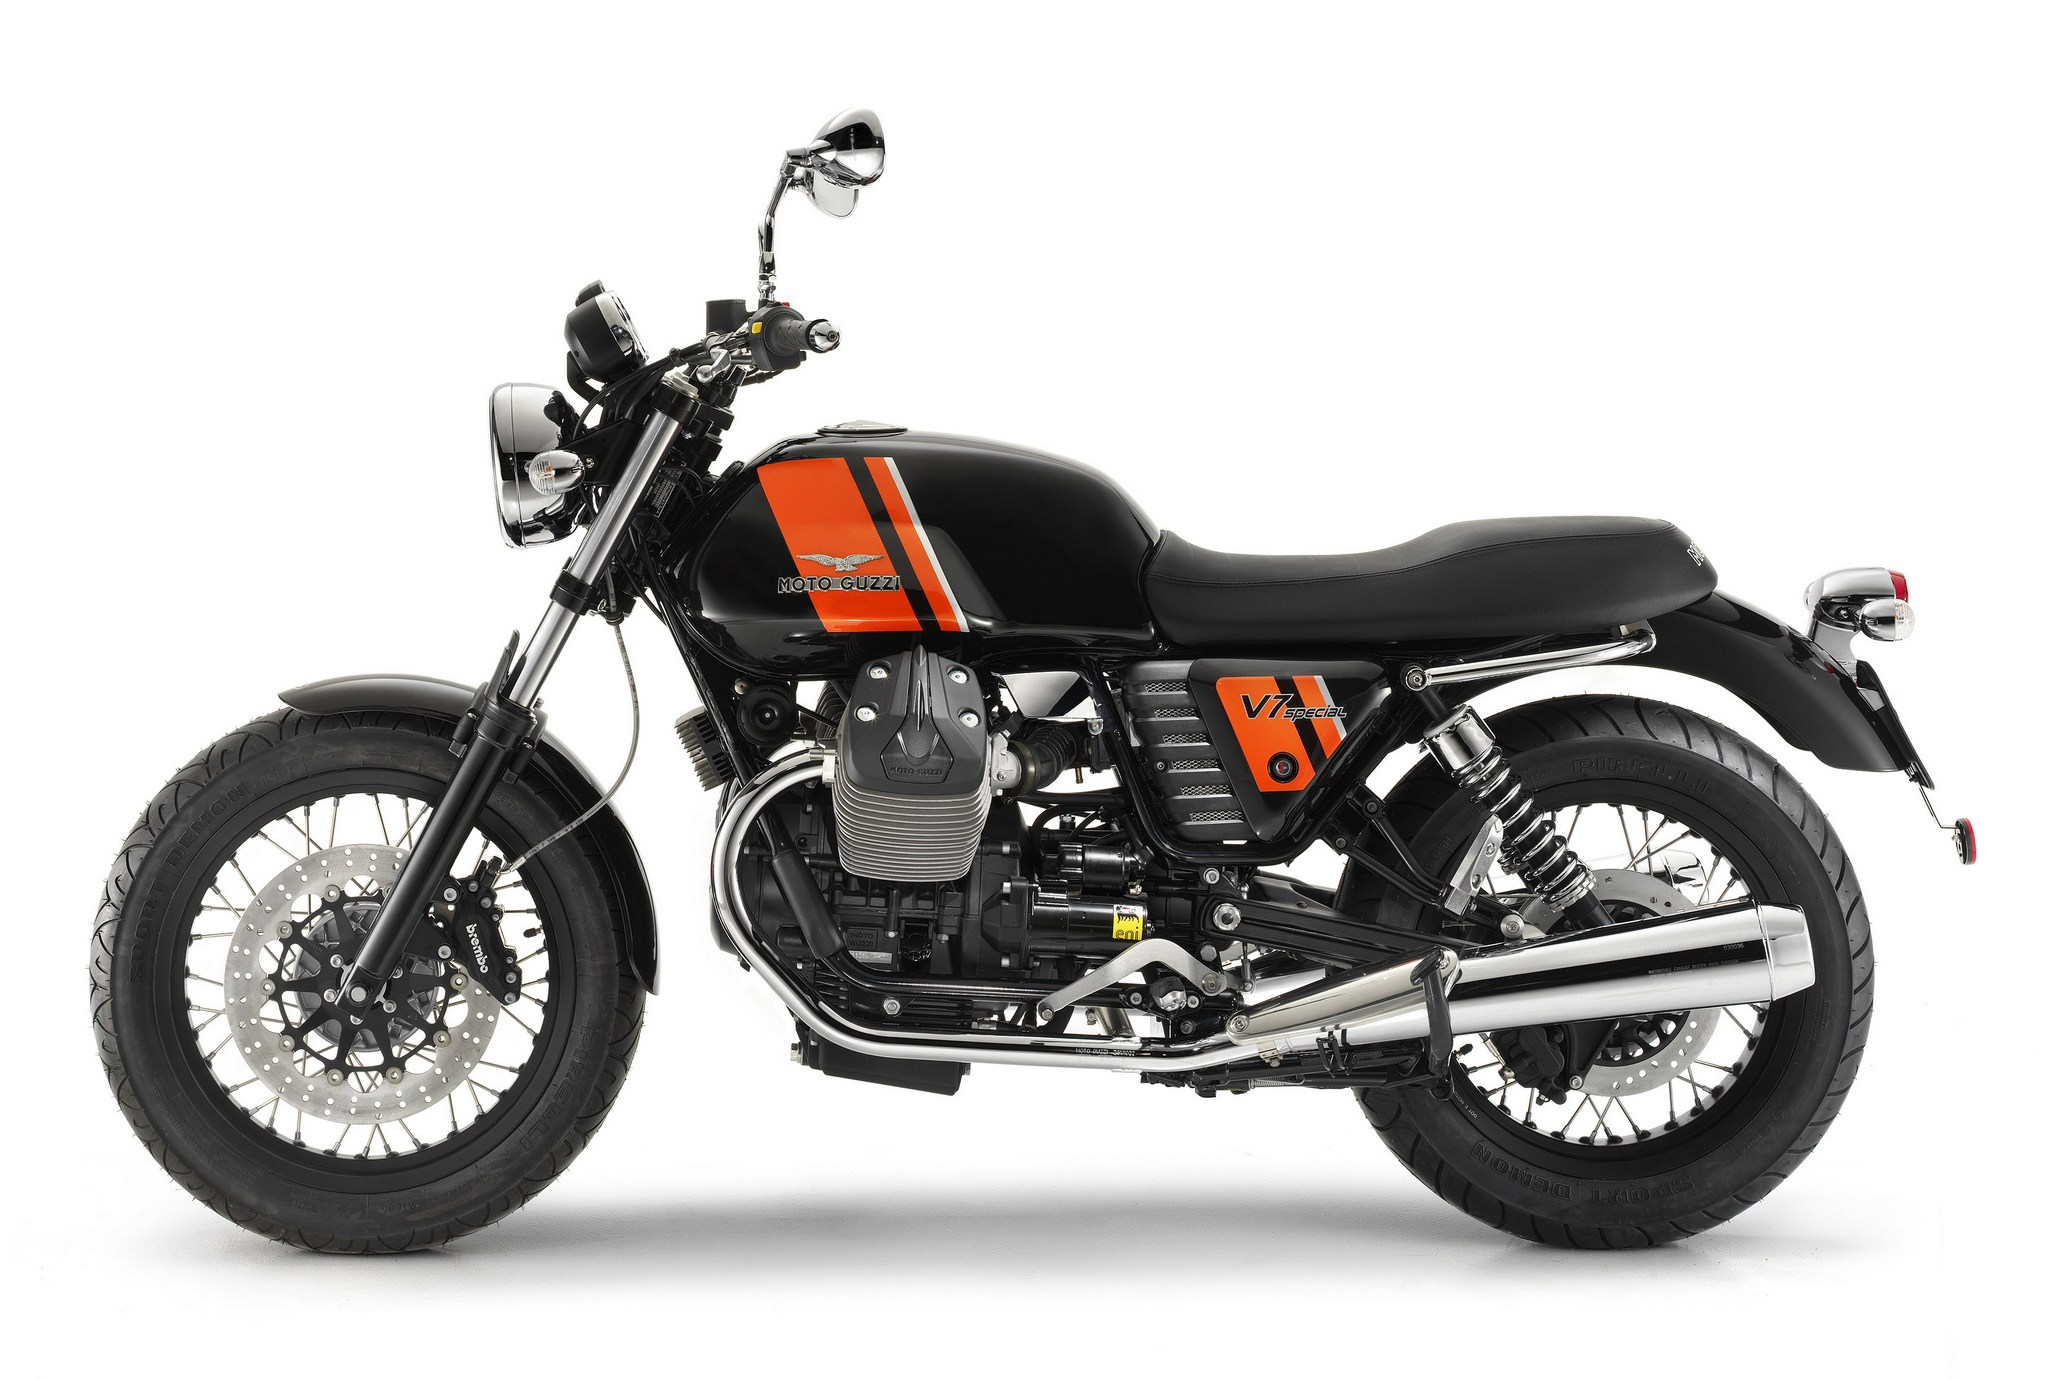 moto guzzi norge and v7 get new colors autoevolution. Black Bedroom Furniture Sets. Home Design Ideas